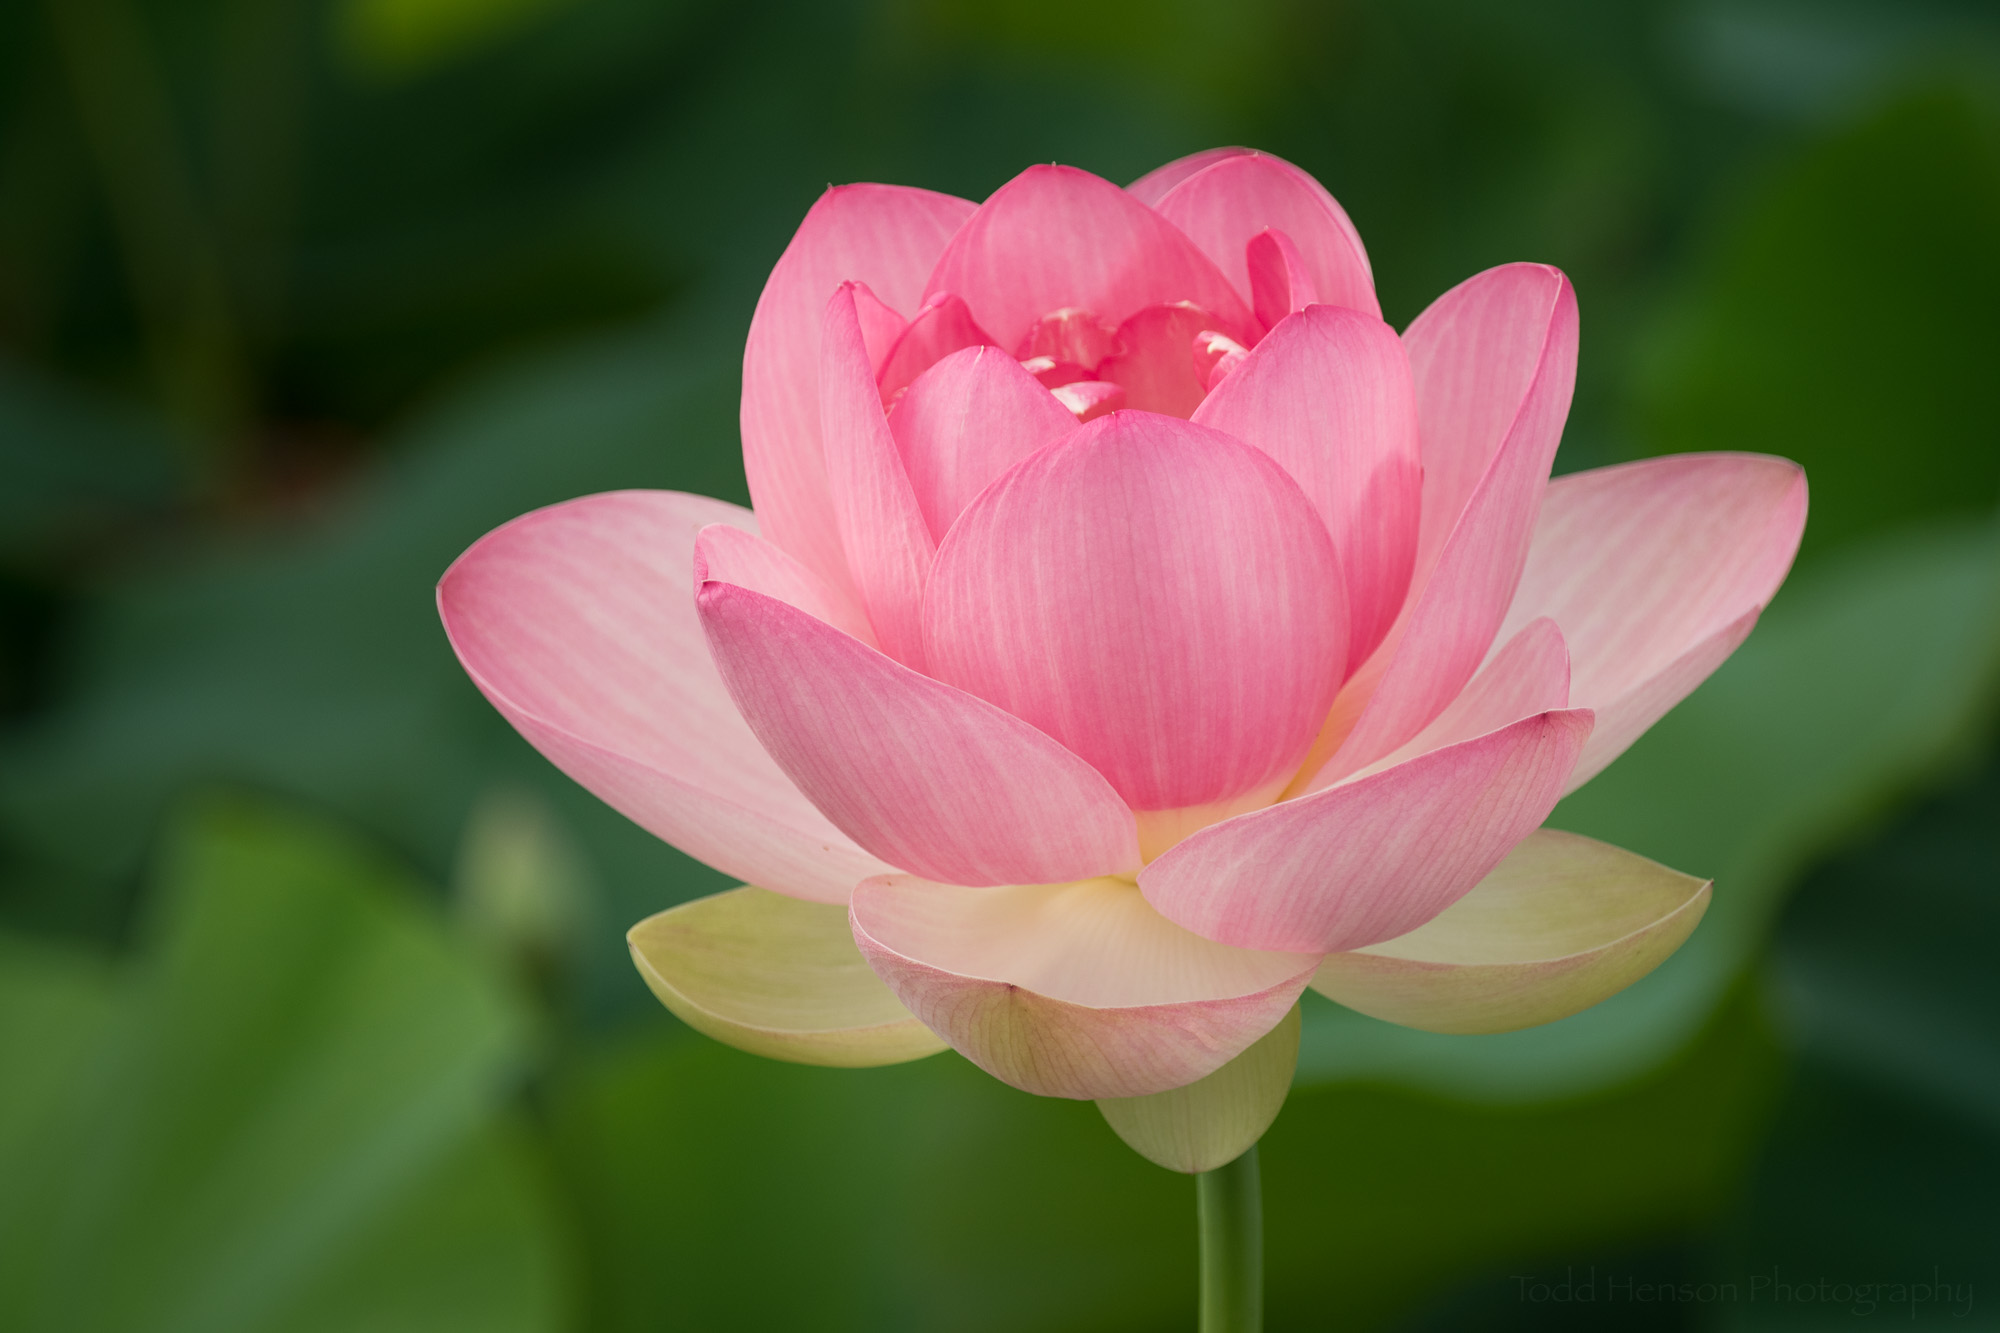 Blooming lotus flower at Kenilworth Aquatic Gardens.